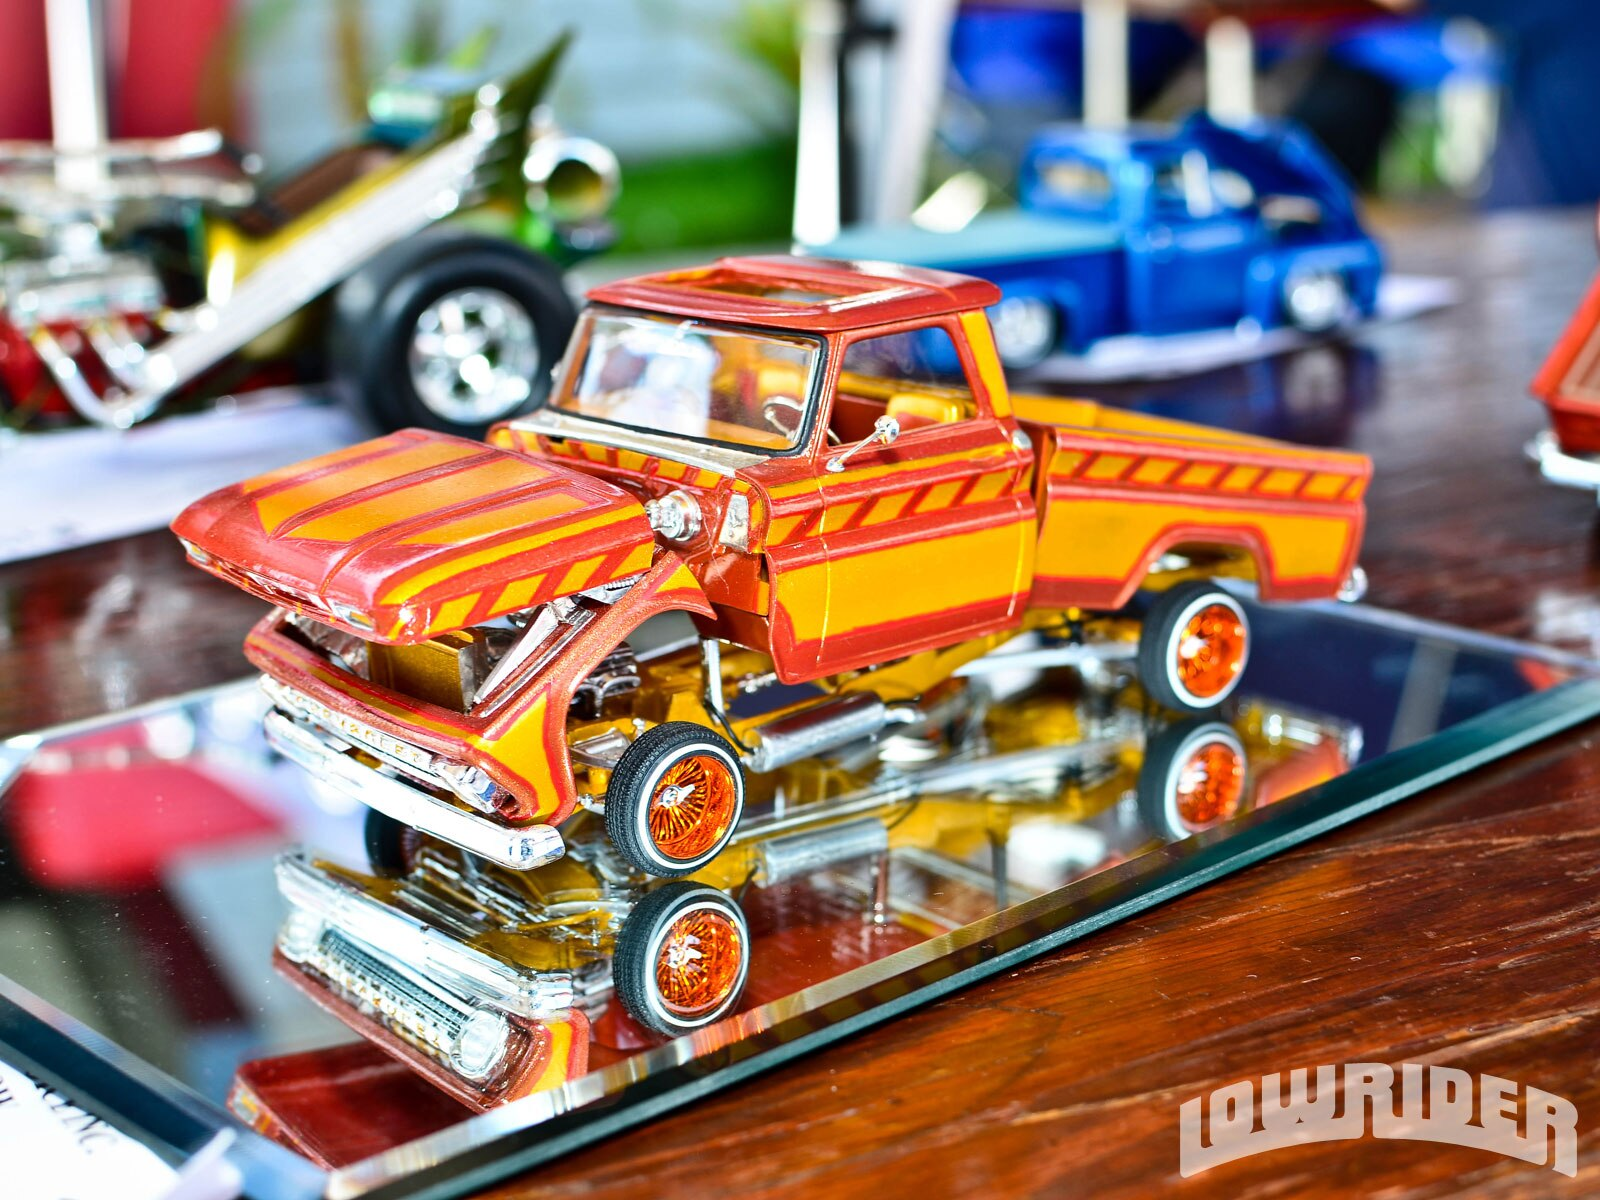 4th Annual Old Memories Pedal Car, Model Car, Lowrider Bicycle Show ...